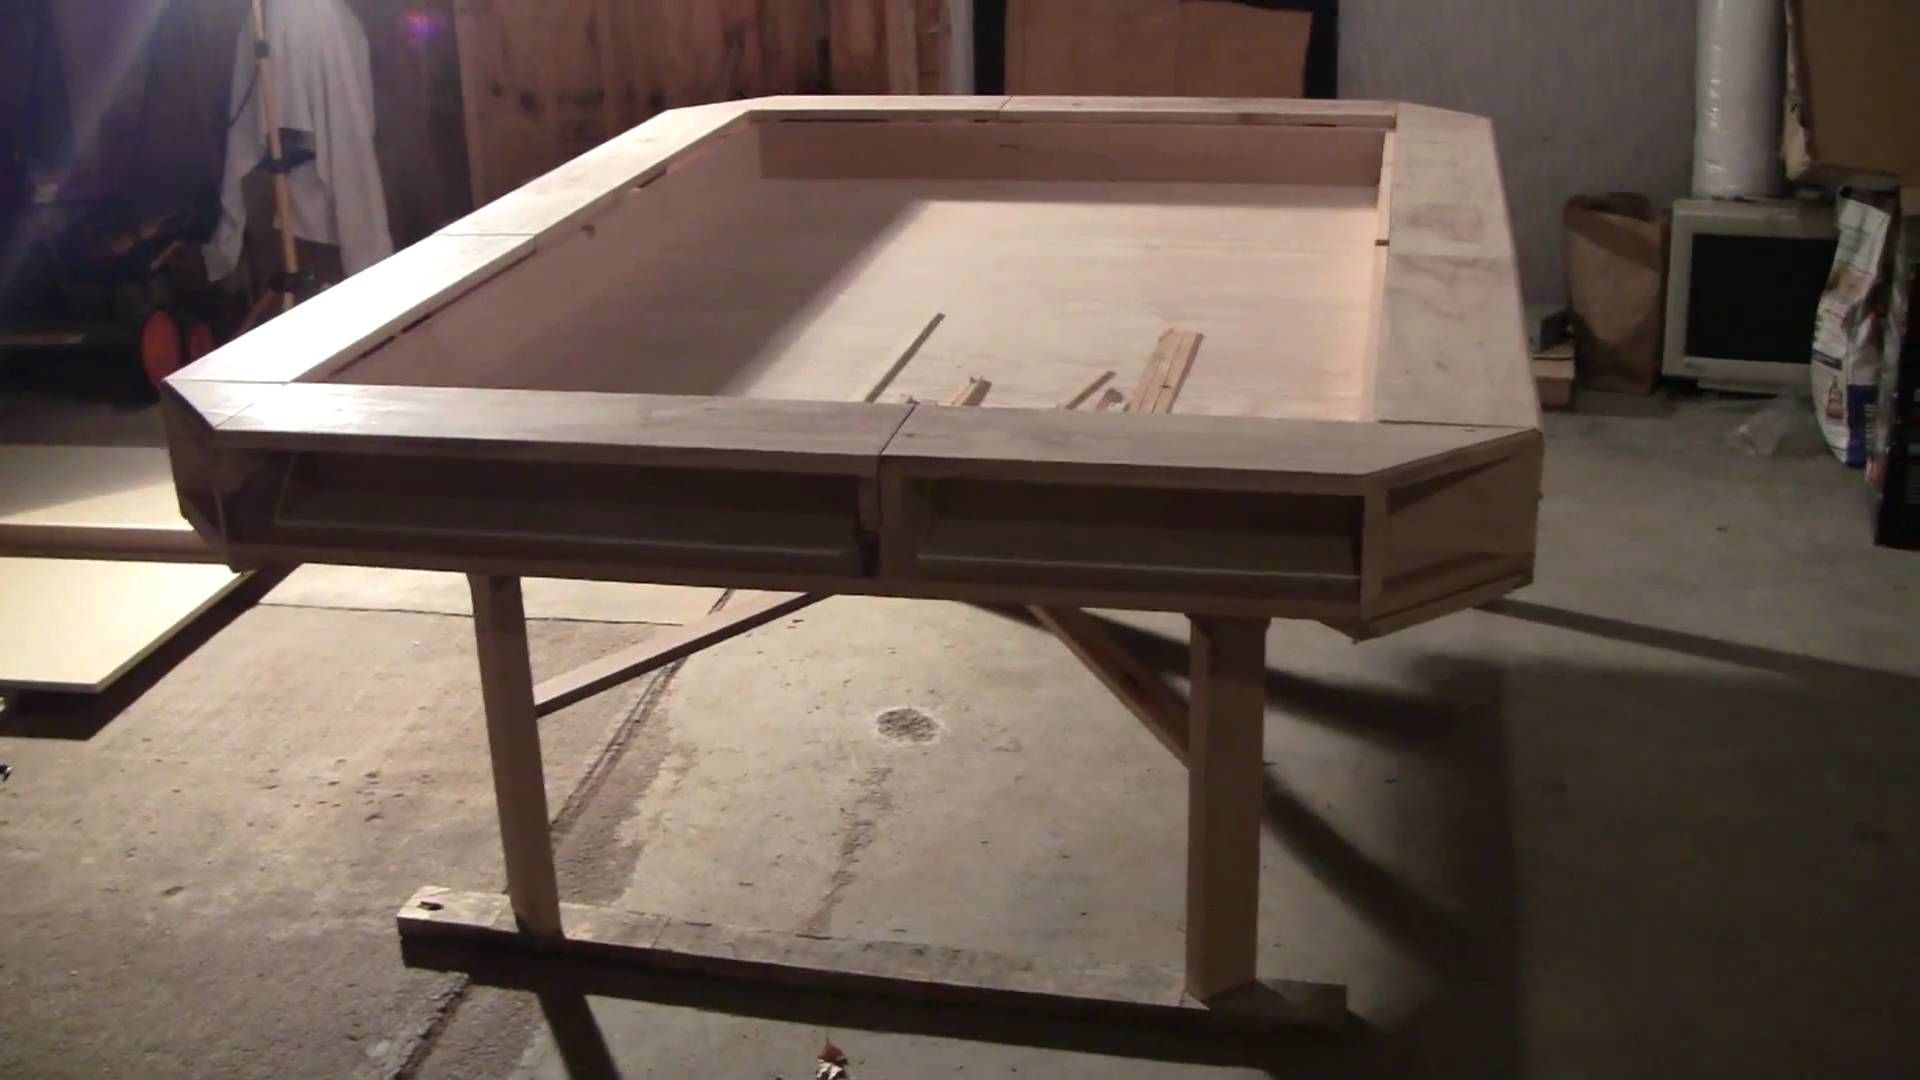 Cool Design For A Gaming Table With Interesting Fold Out Sections